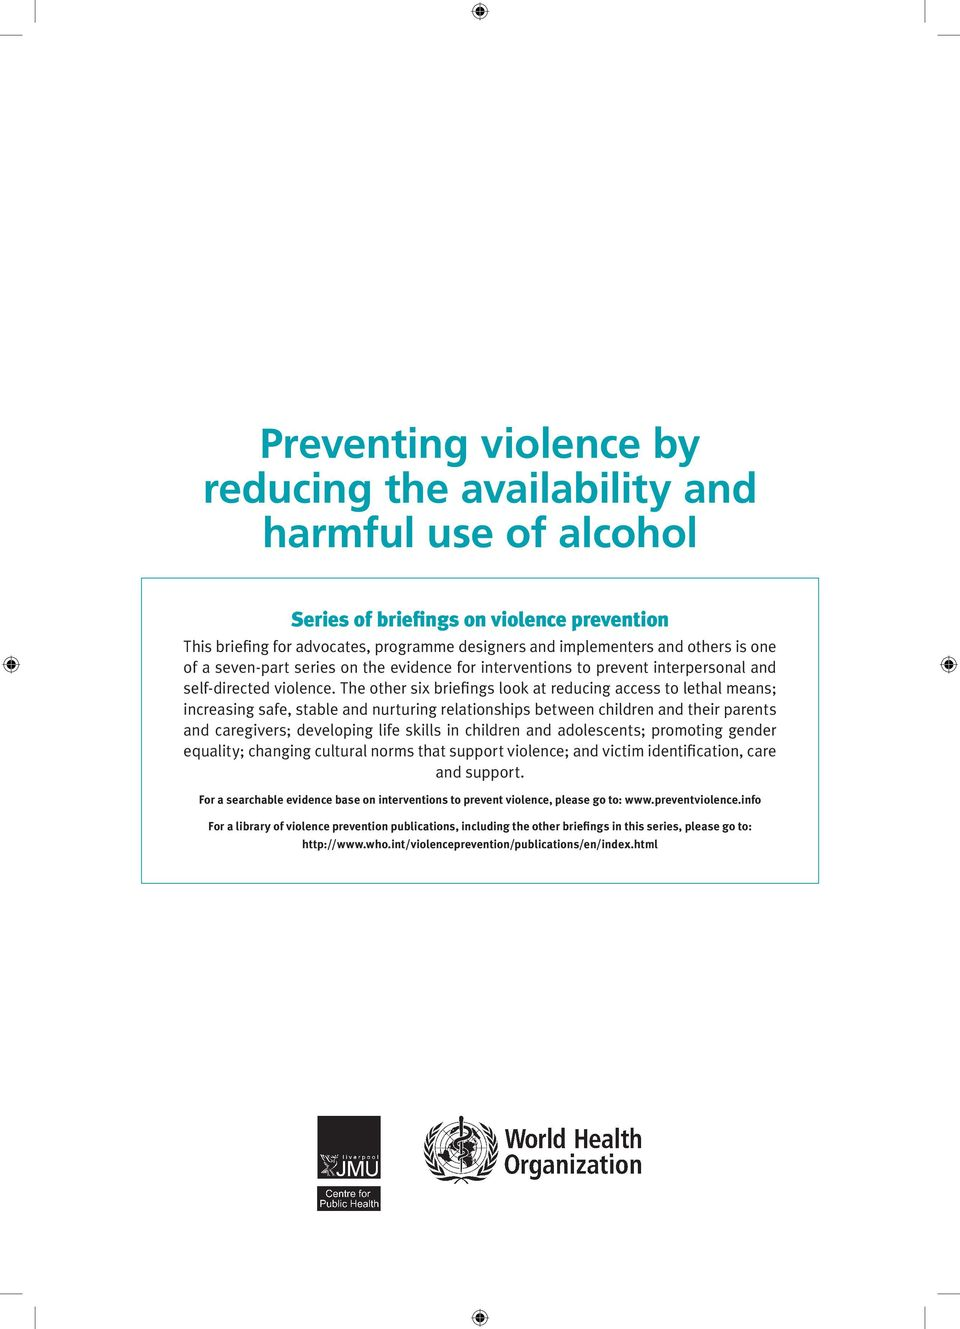 The other six briefings look at reducing access to lethal means; increasing safe, stable and nurturing relationships between children and their parents and caregivers; developing life skills in